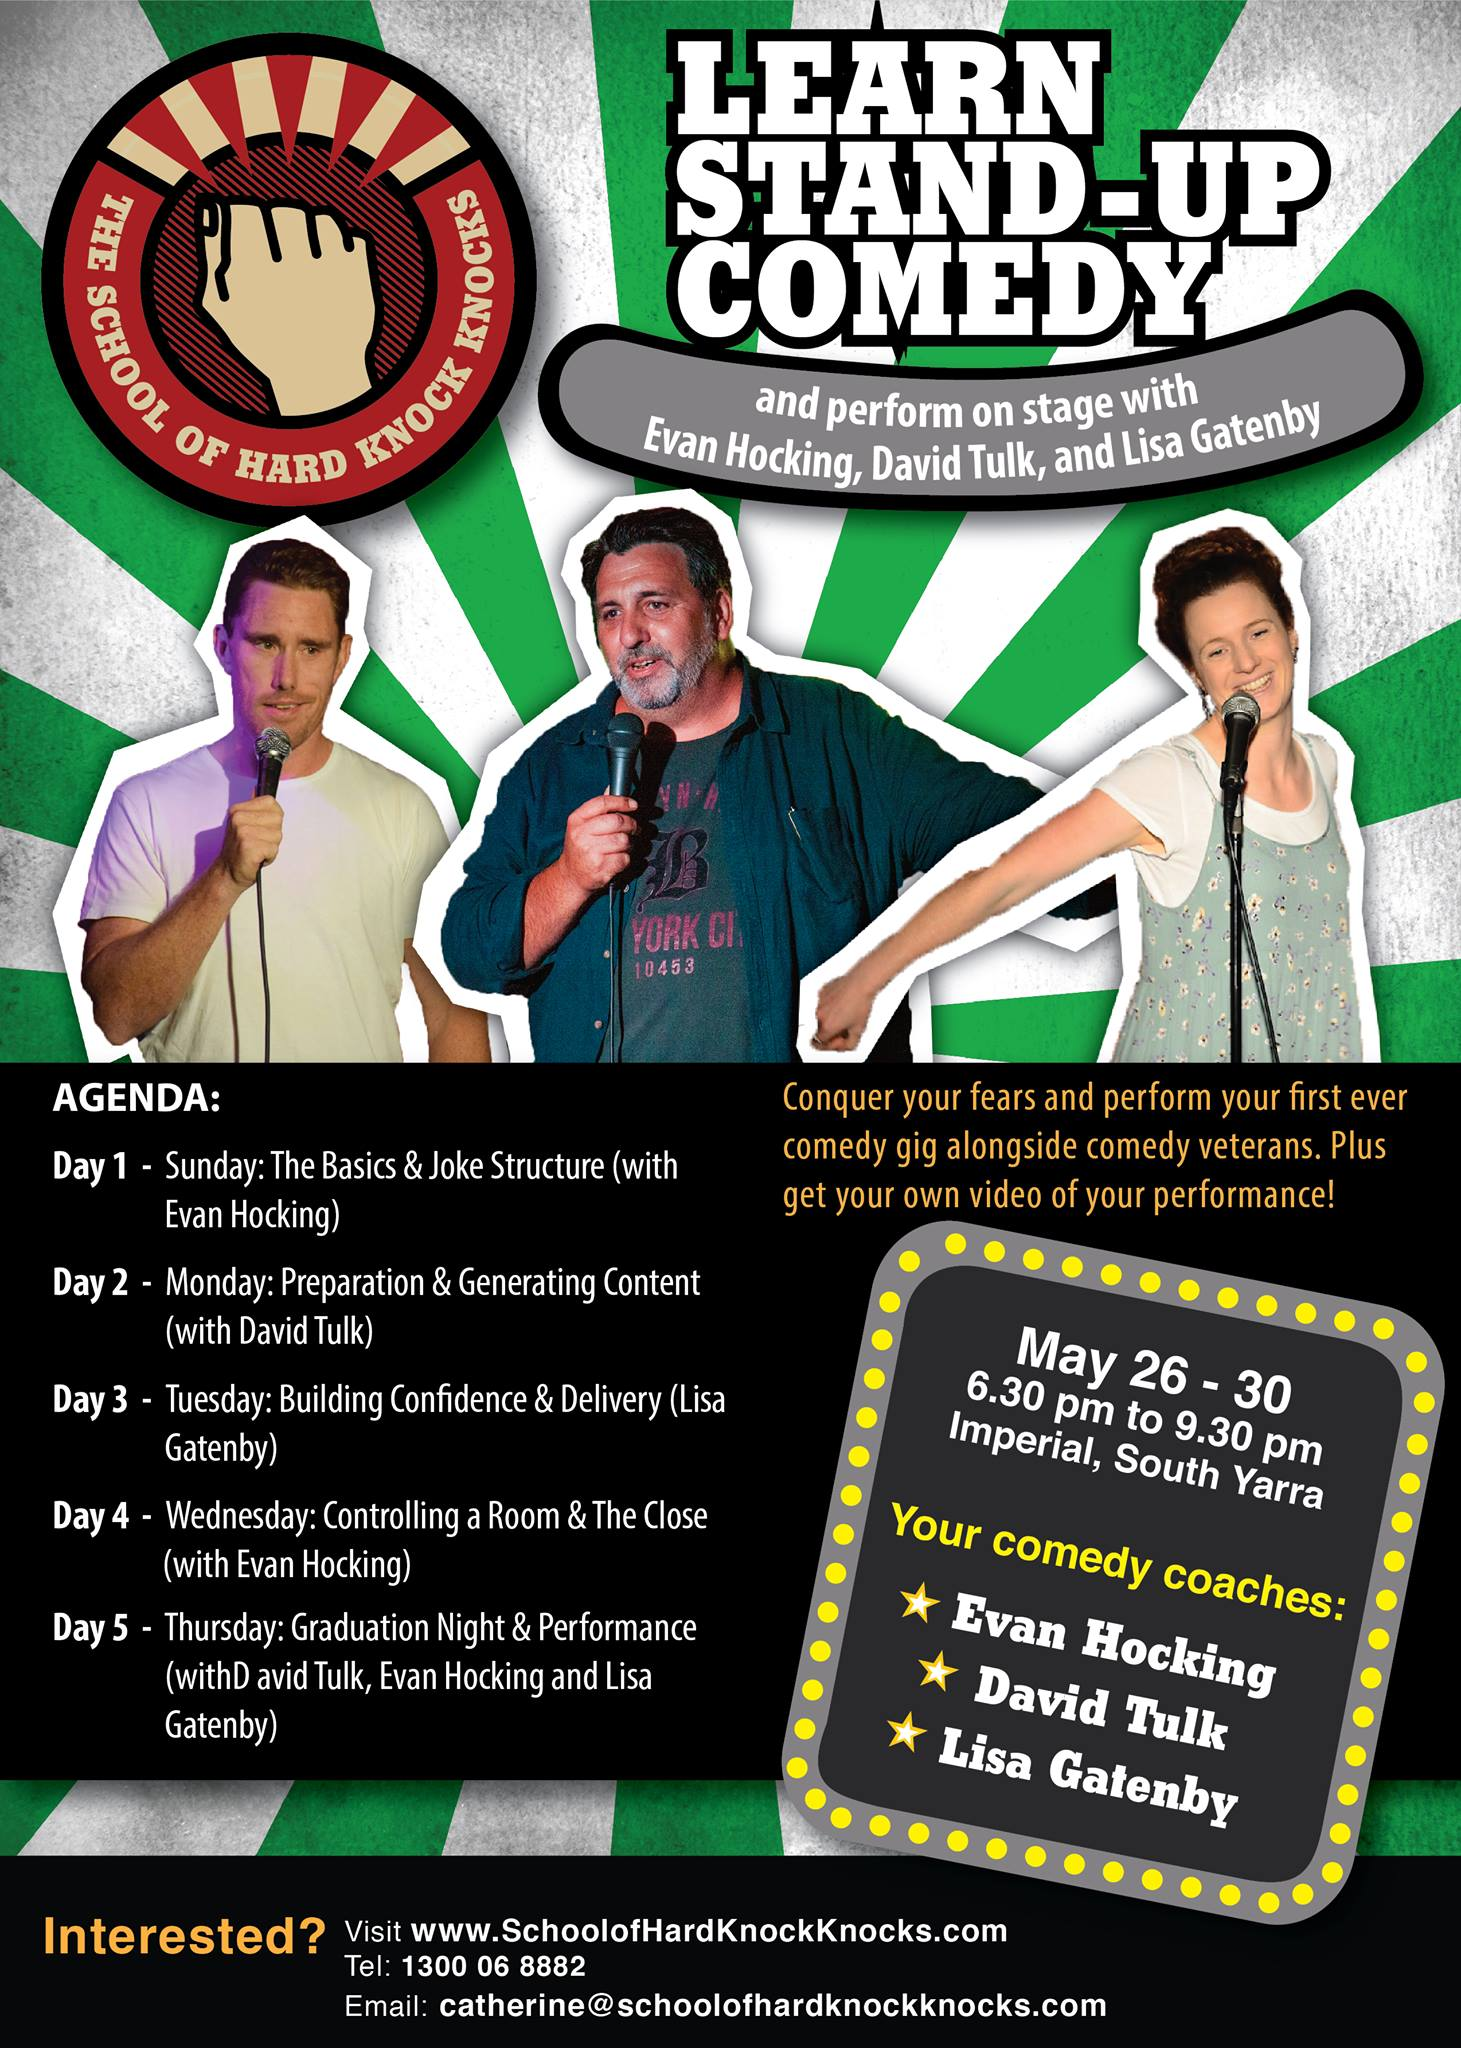 Learn stand-up comedy in Melbourne - School of Hard Knock Knocks